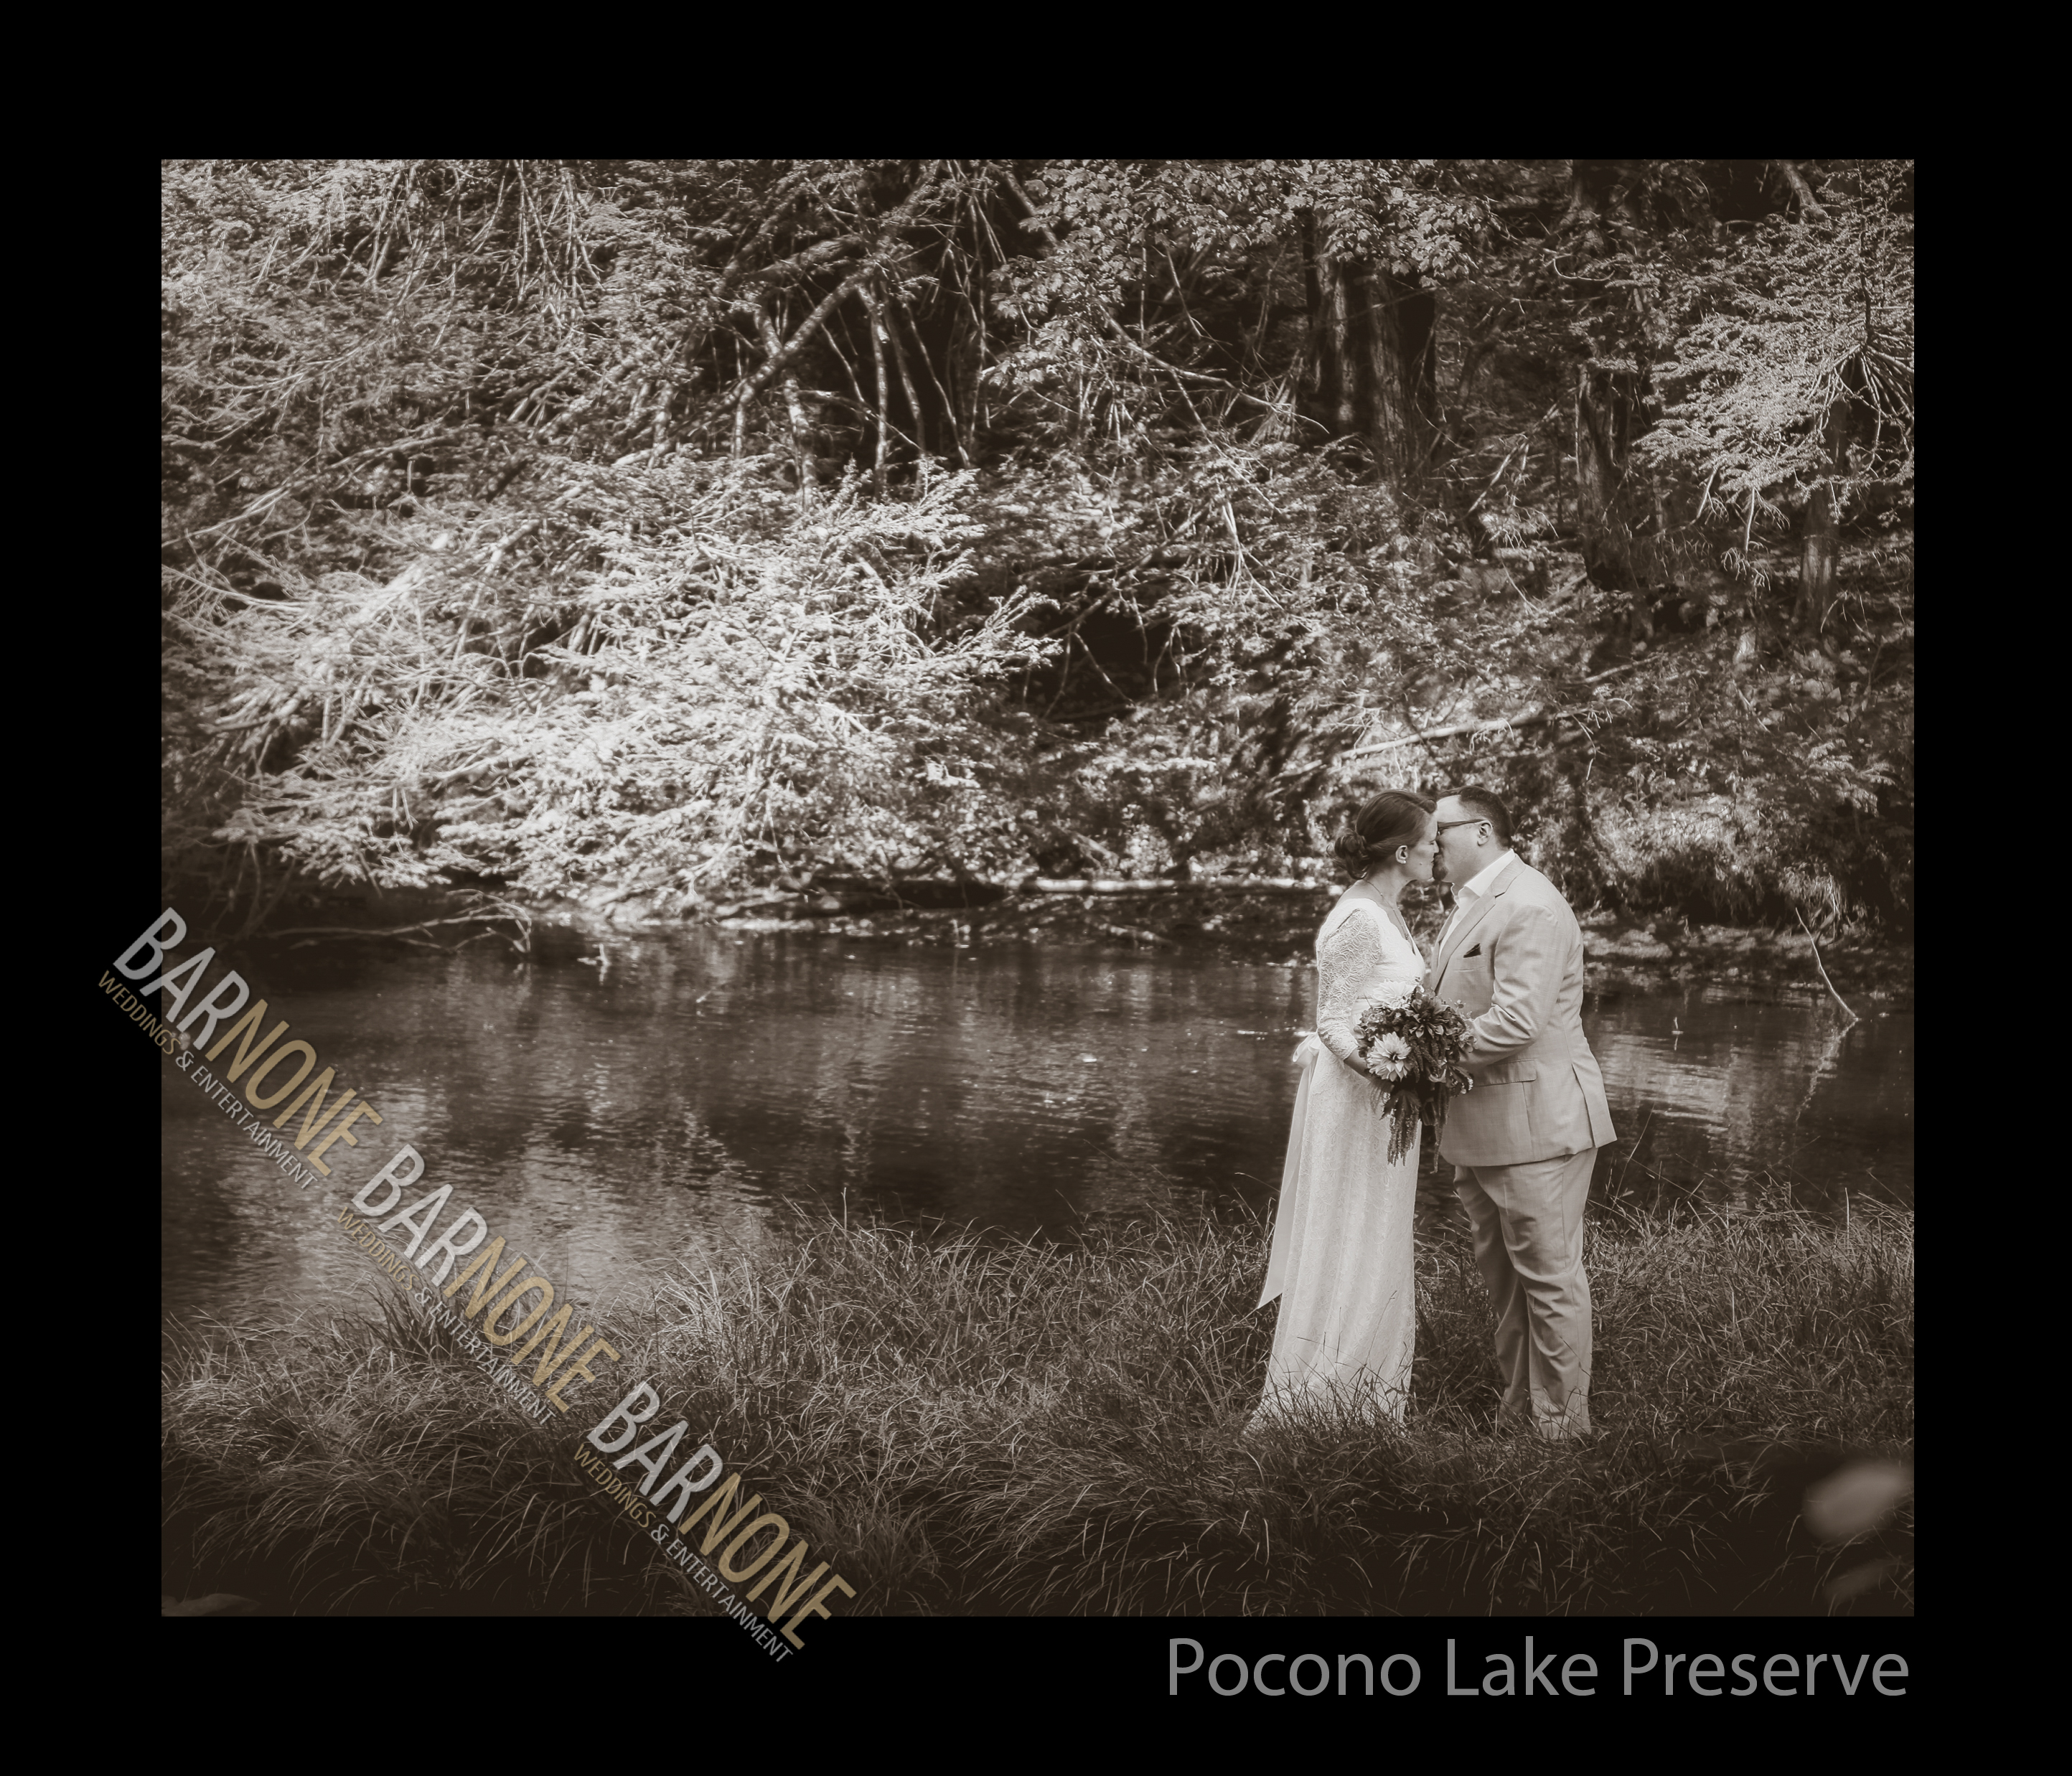 Pocono Lake Preserve Wedding Photography - Bar None Photography